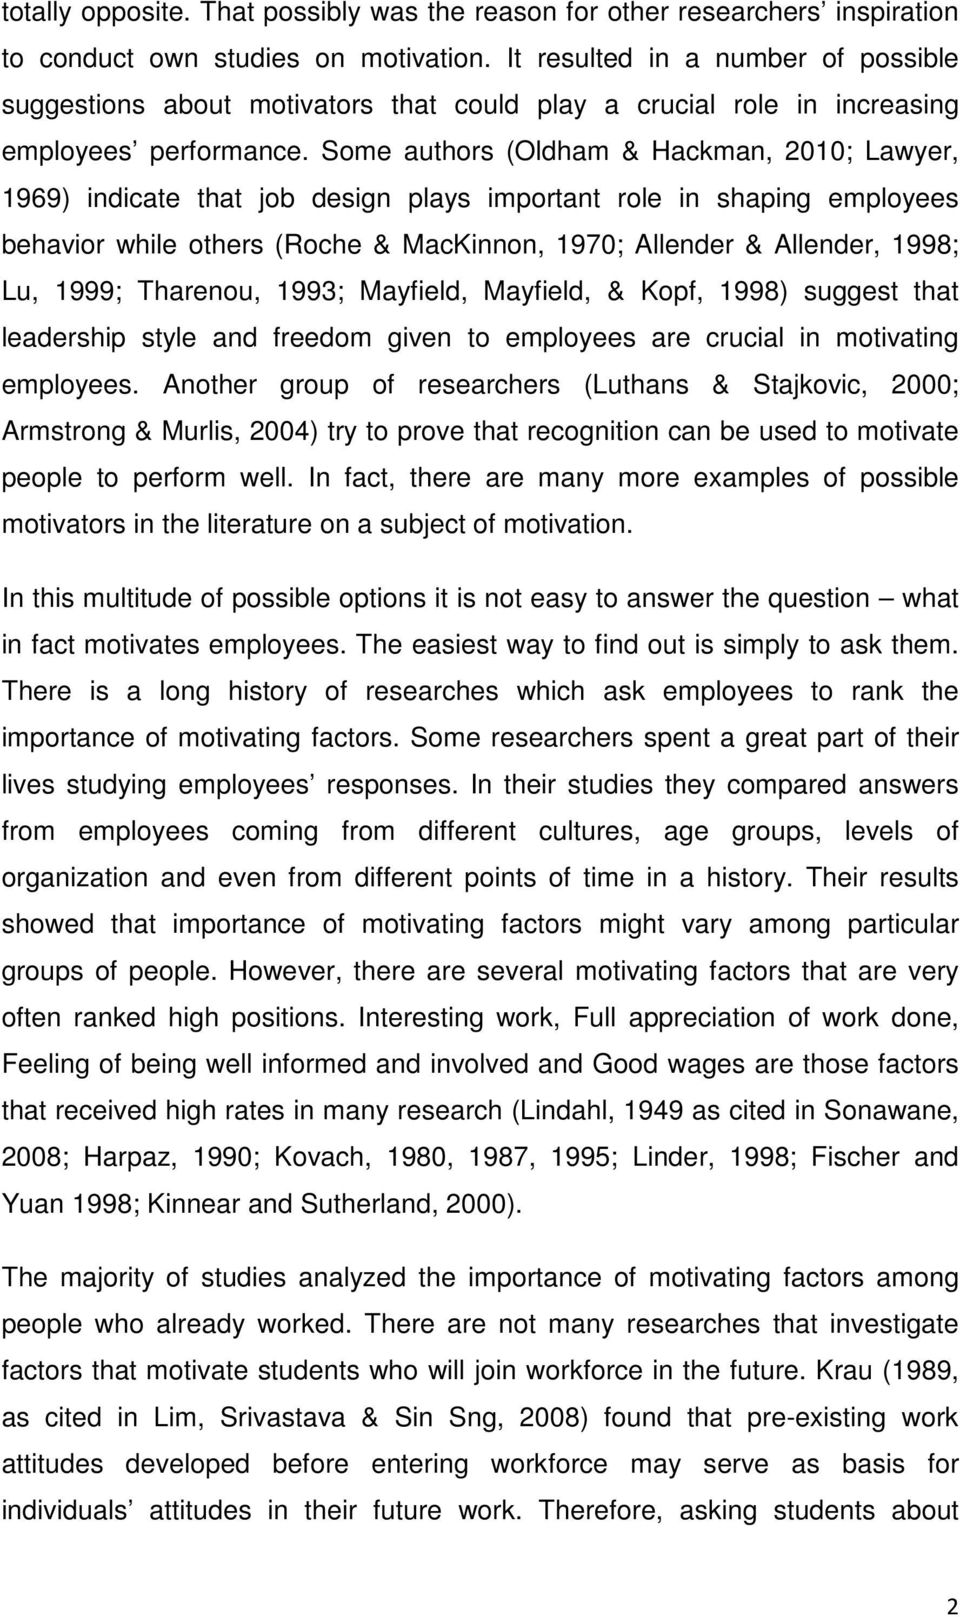 Some authors (Oldham & Hackman, 2010; Lawyer, 1969) indicate that job design plays important role in shaping employees behavior while others (Roche & MacKinnon, 1970; Allender & Allender, 1998; Lu,